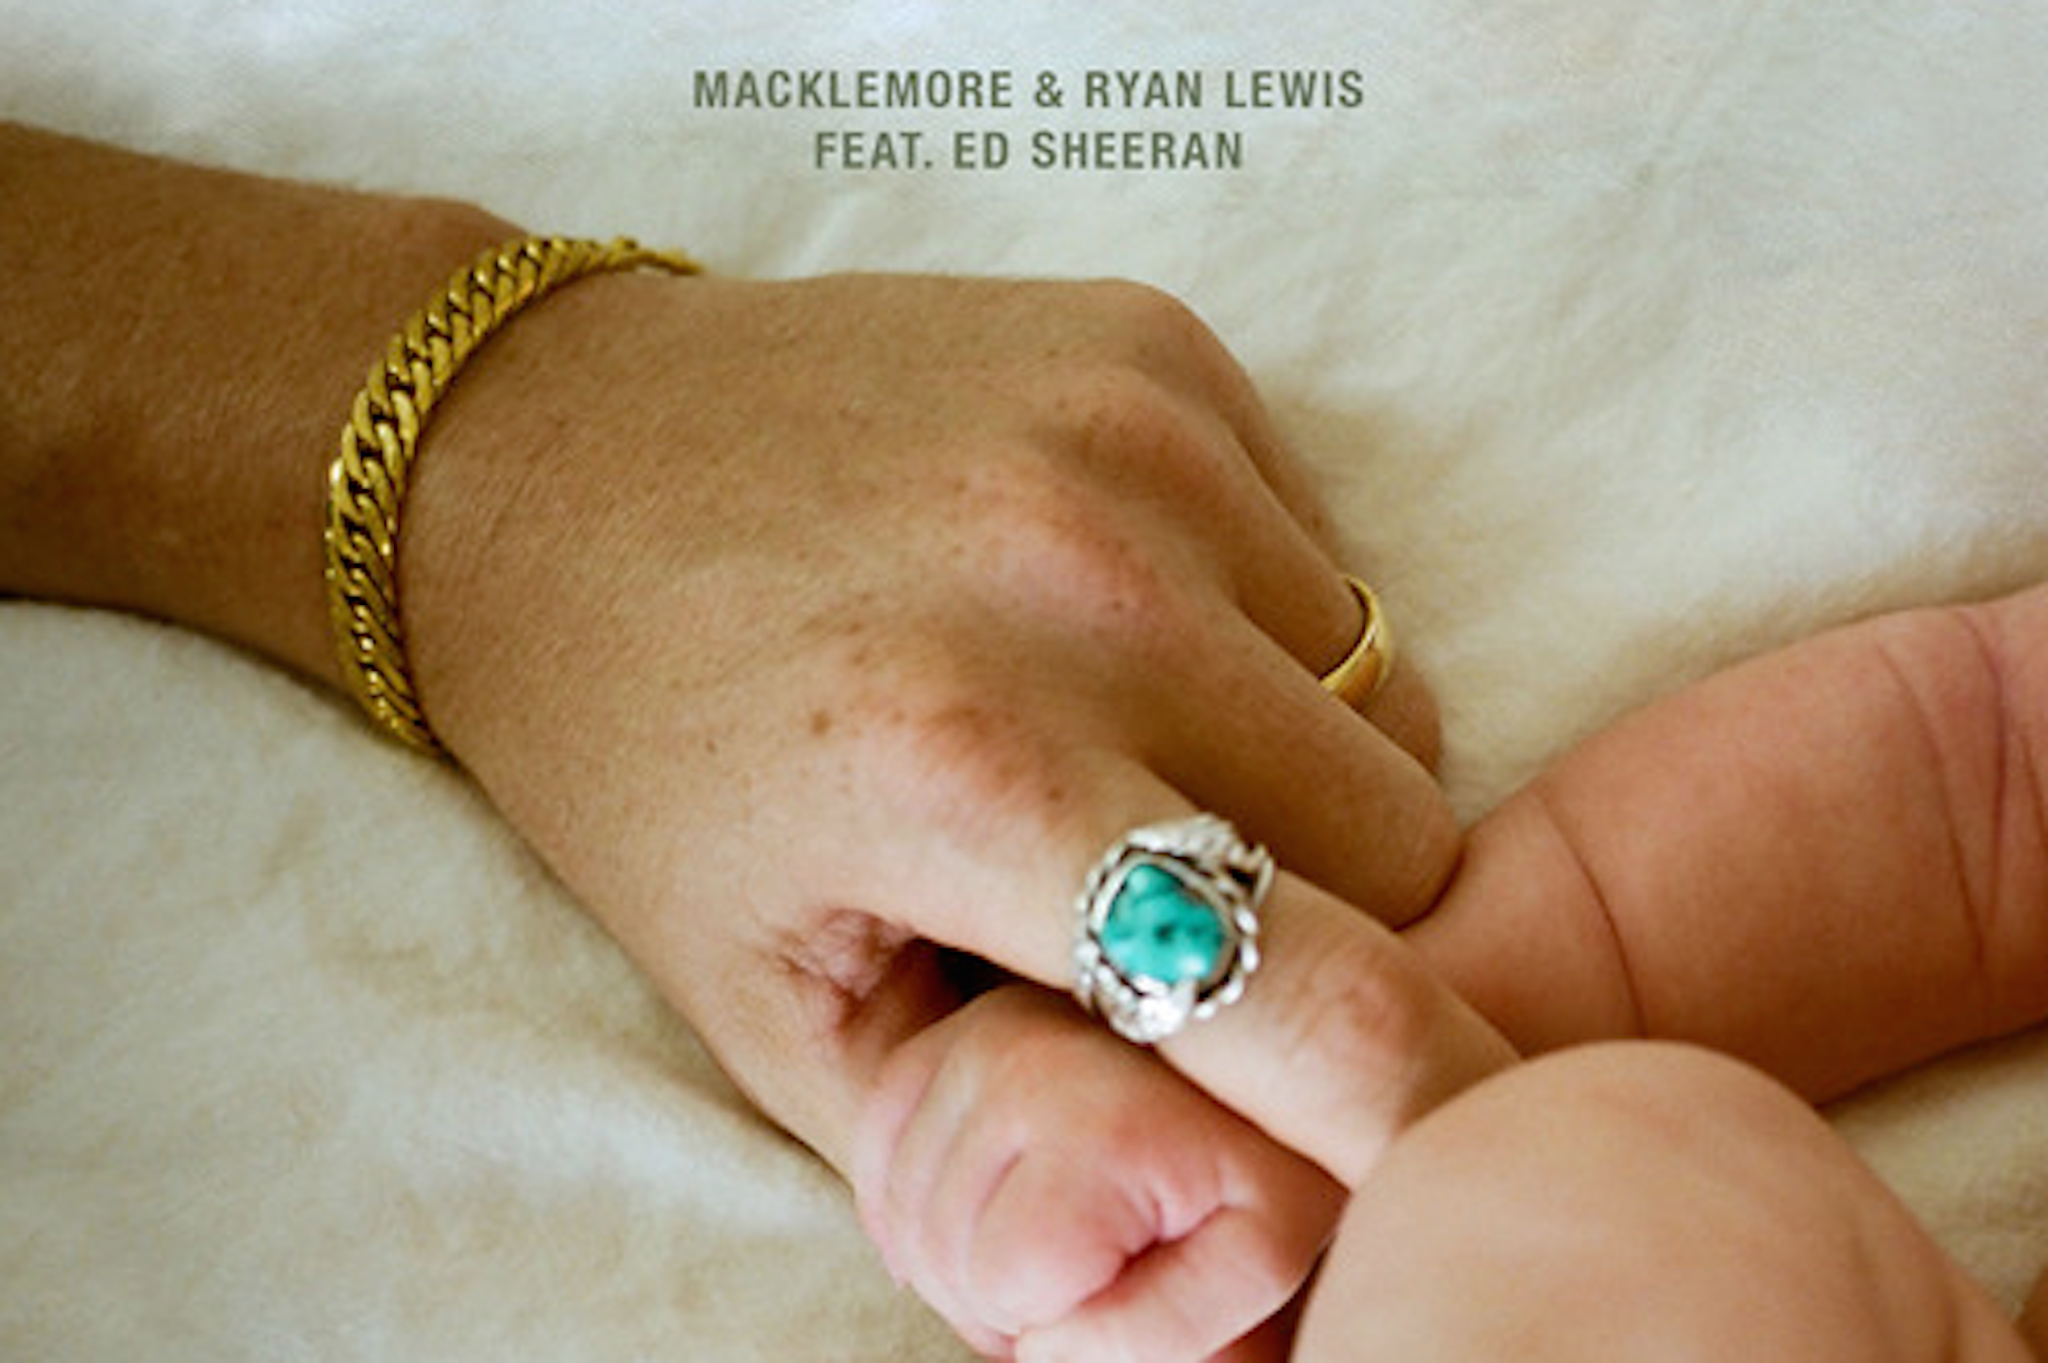 Macklemore & Ryan Lewis – Growing Up (Sloane's Song) feat. Ed Sheeran